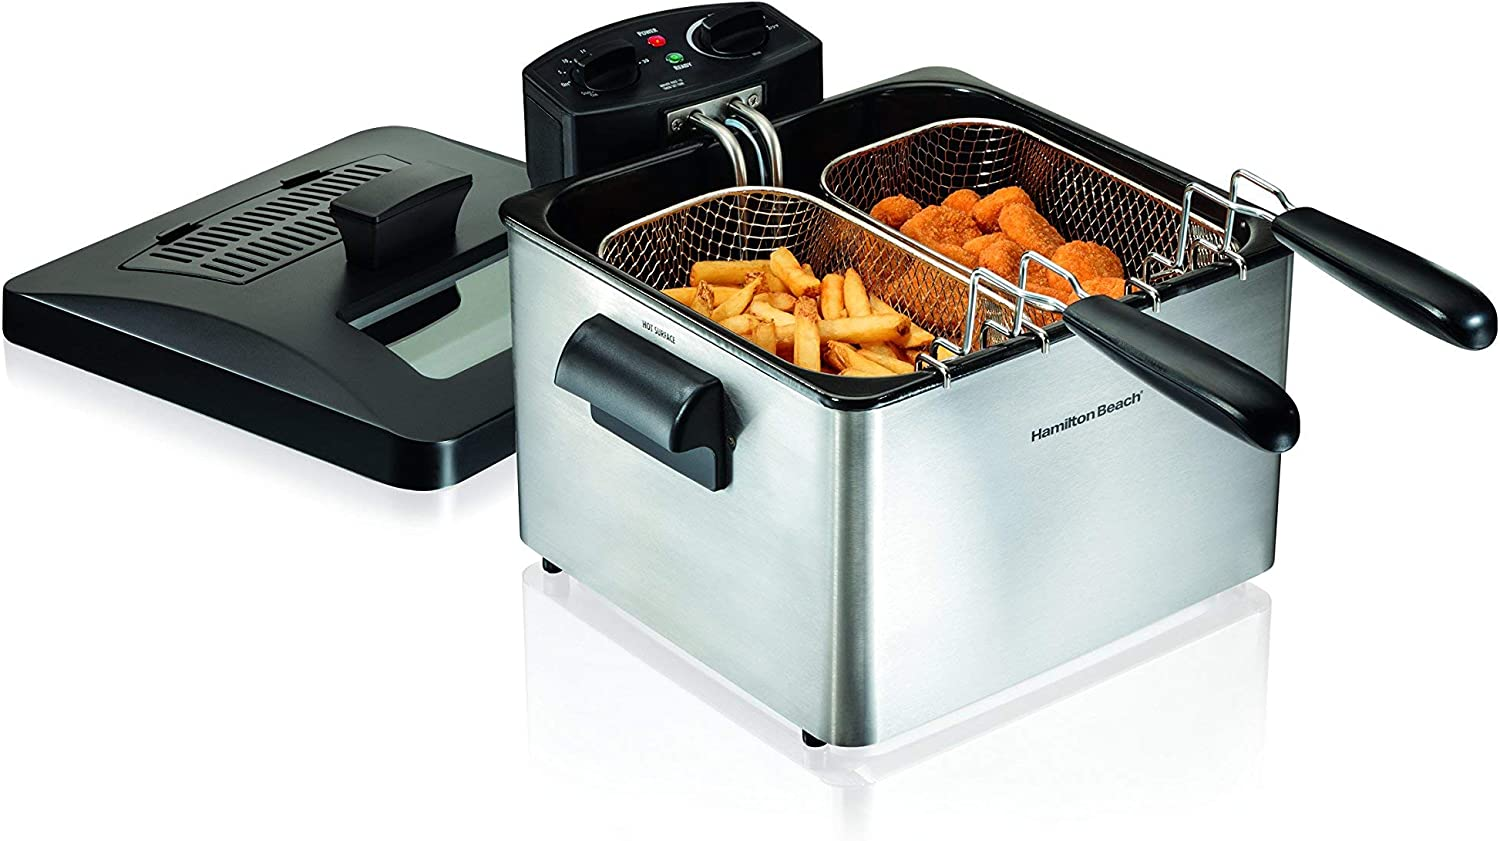 Hamilton Beach 35036 Double Basket Electric Deep Fryer Professional-Style, 12 Cup Food Capacity, 4.5 Liters and 1800 Watts, Stainless Steel (Renewed)